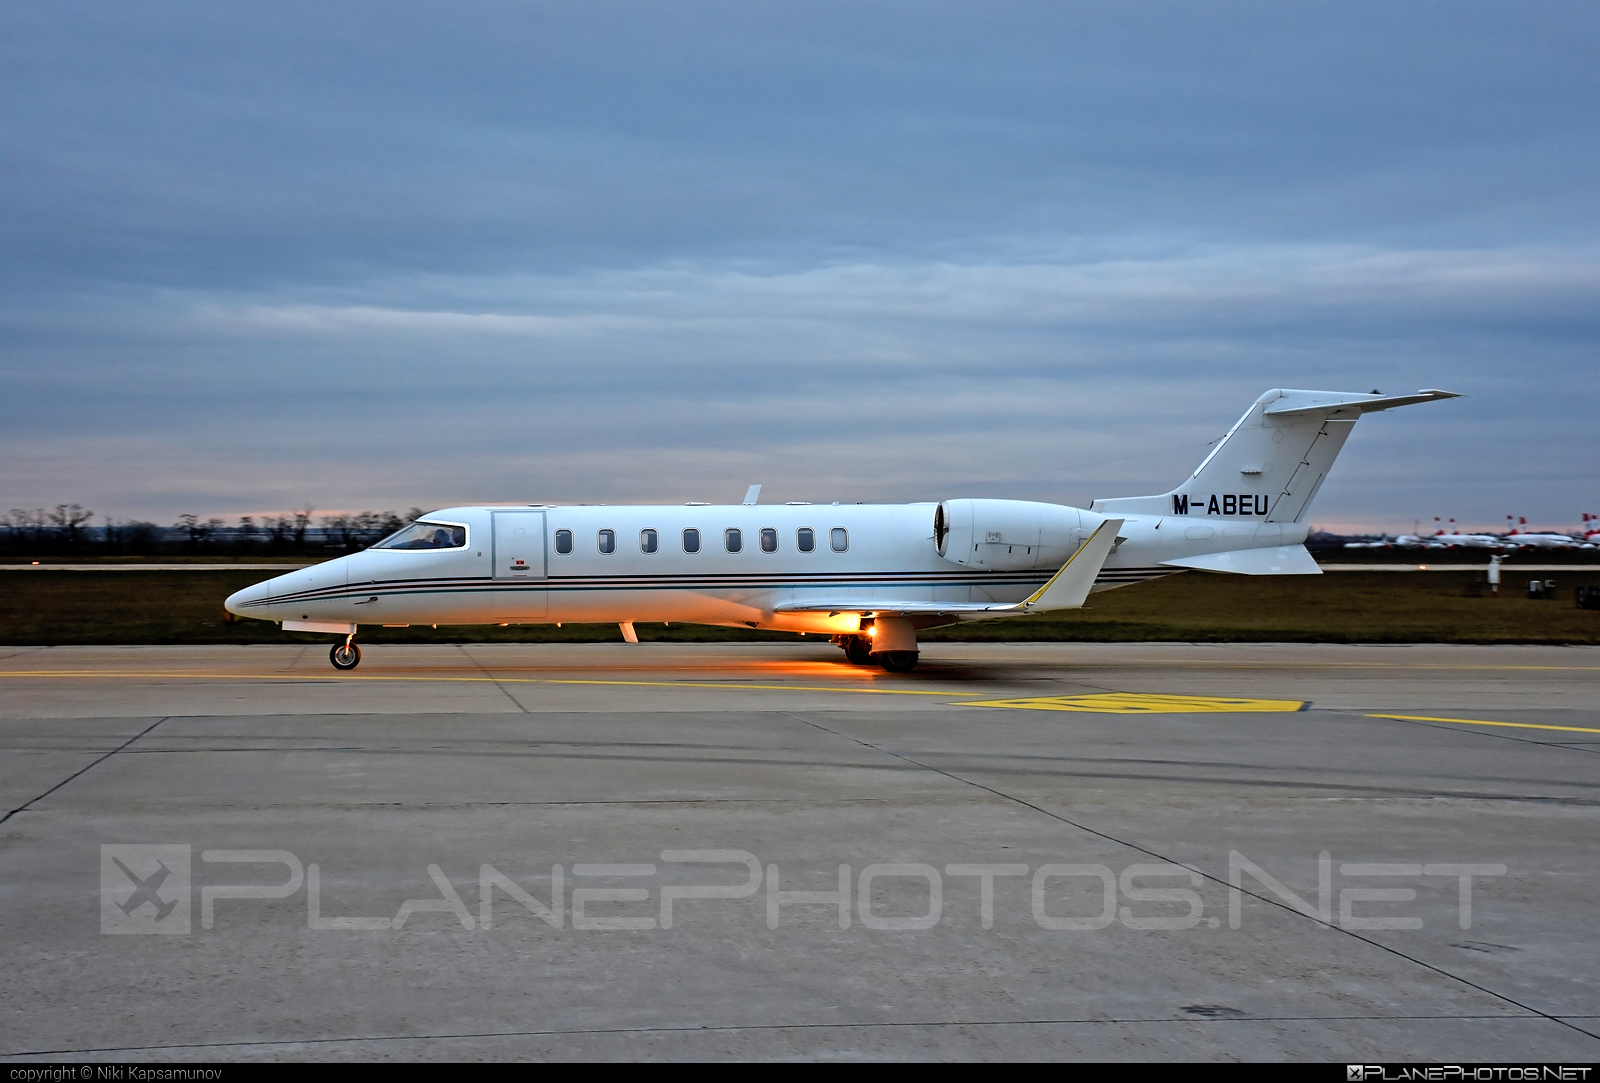 Bombardier Learjet 45 - M-ABEU operated by Ryanair #bombardier #learjet #learjet45 #ryanair